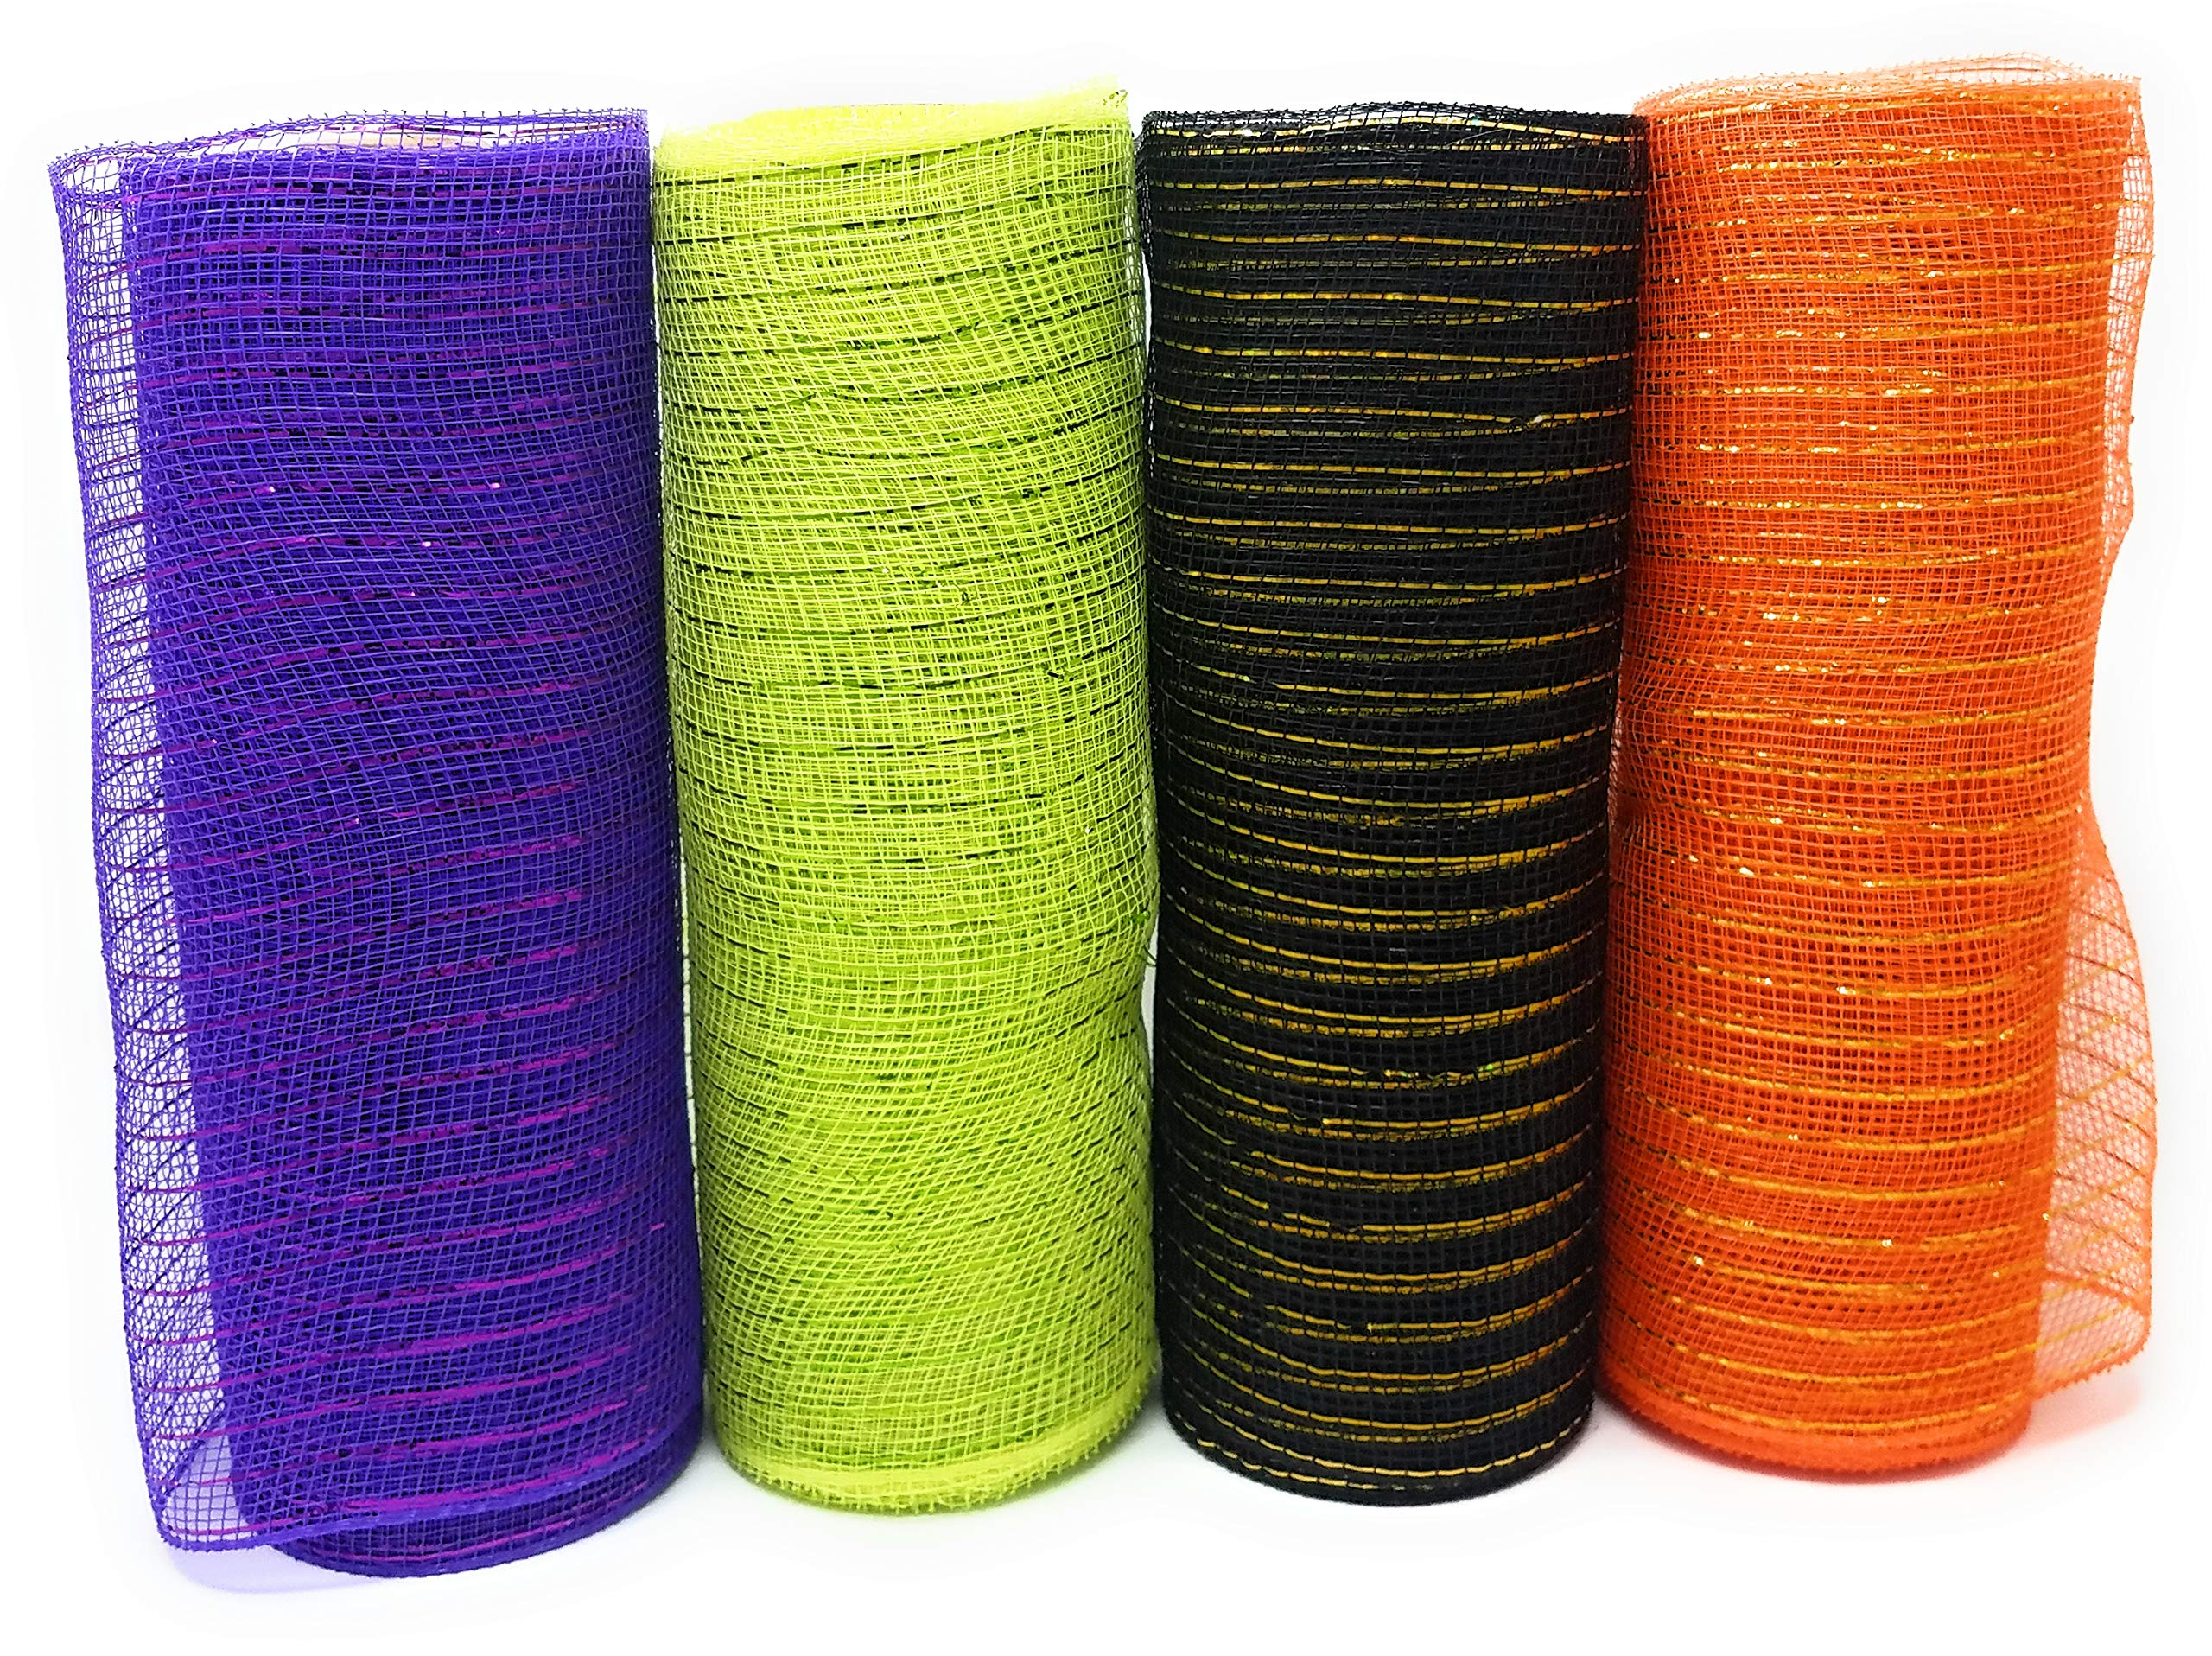 Halloween Decorative 10'' Wide Deco Mesh Rolls (Pack of 4) for Crafting Wire Wreaths (Purple, Orange, Green, Black)